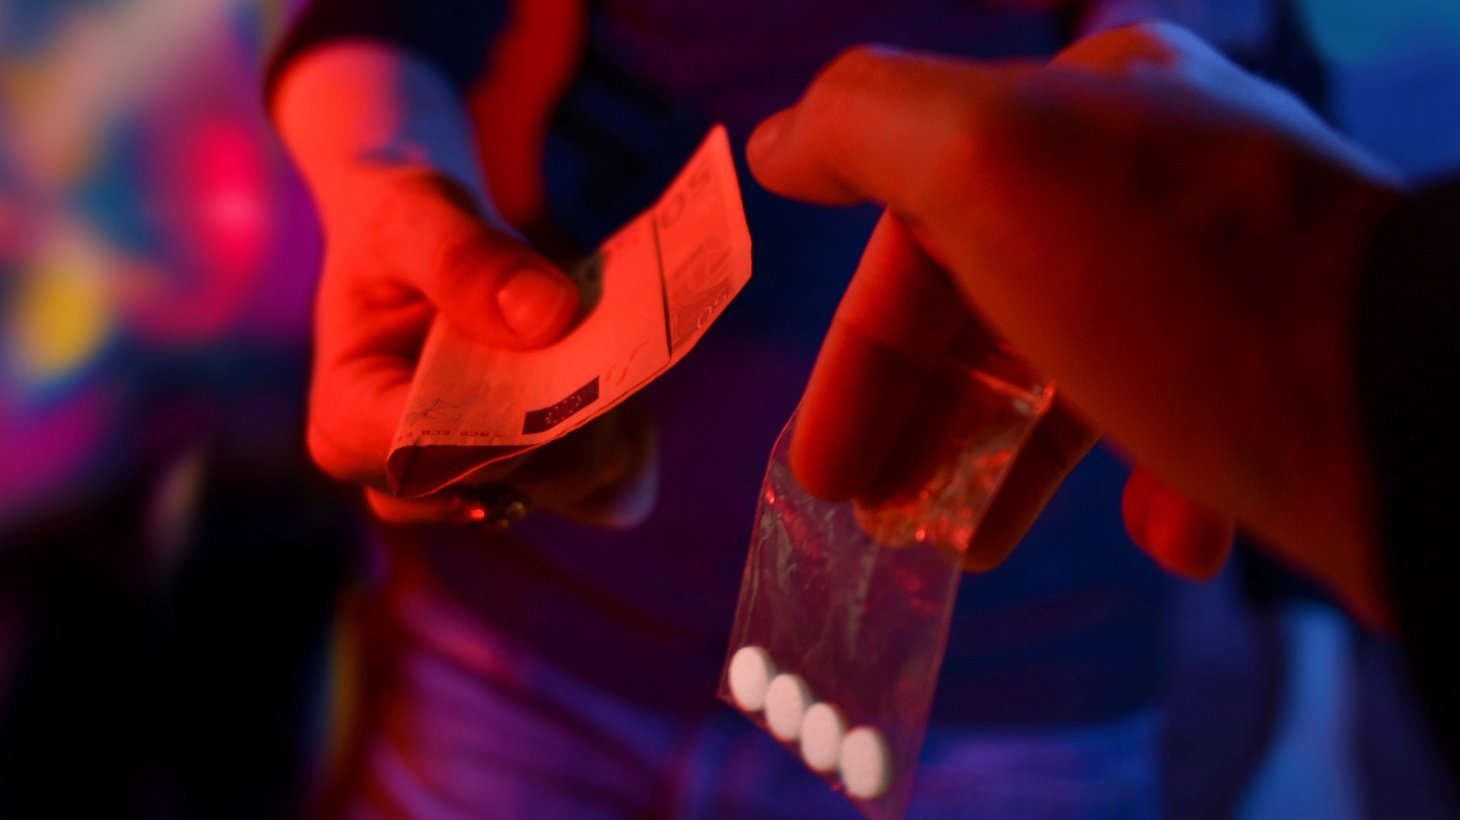 MDMA being sold in a club.